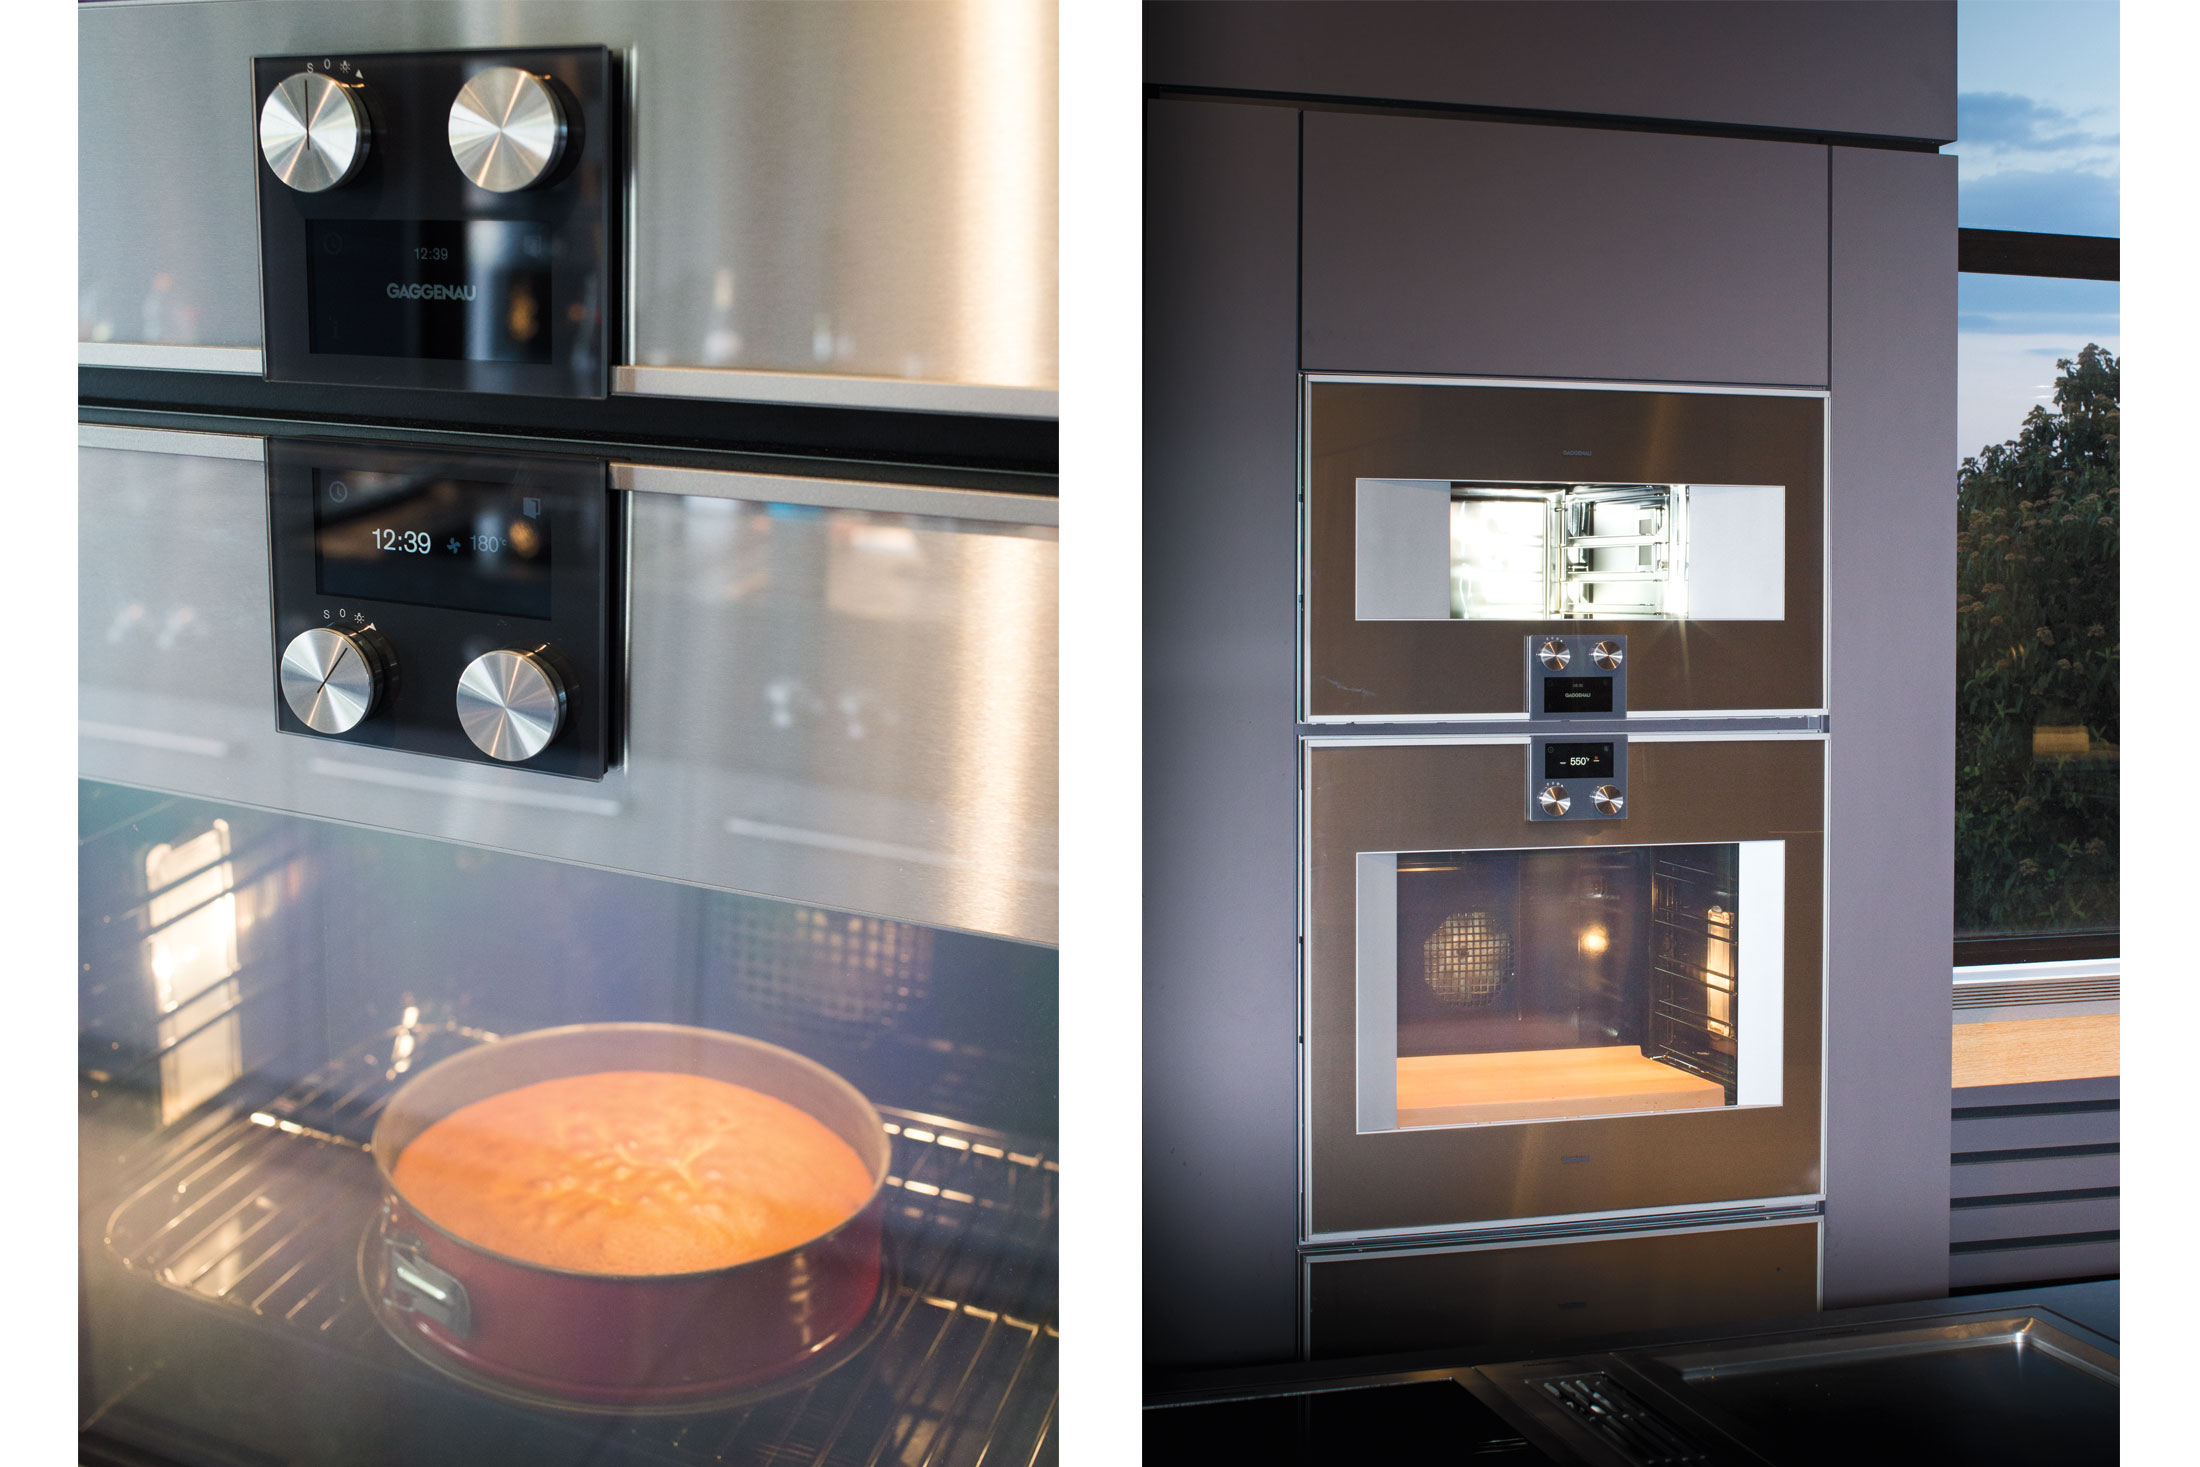 Two views of the 400 Series Combi-steam oven and 400 Series single oven at work.(Photo: Monika Hoefler/Surface)